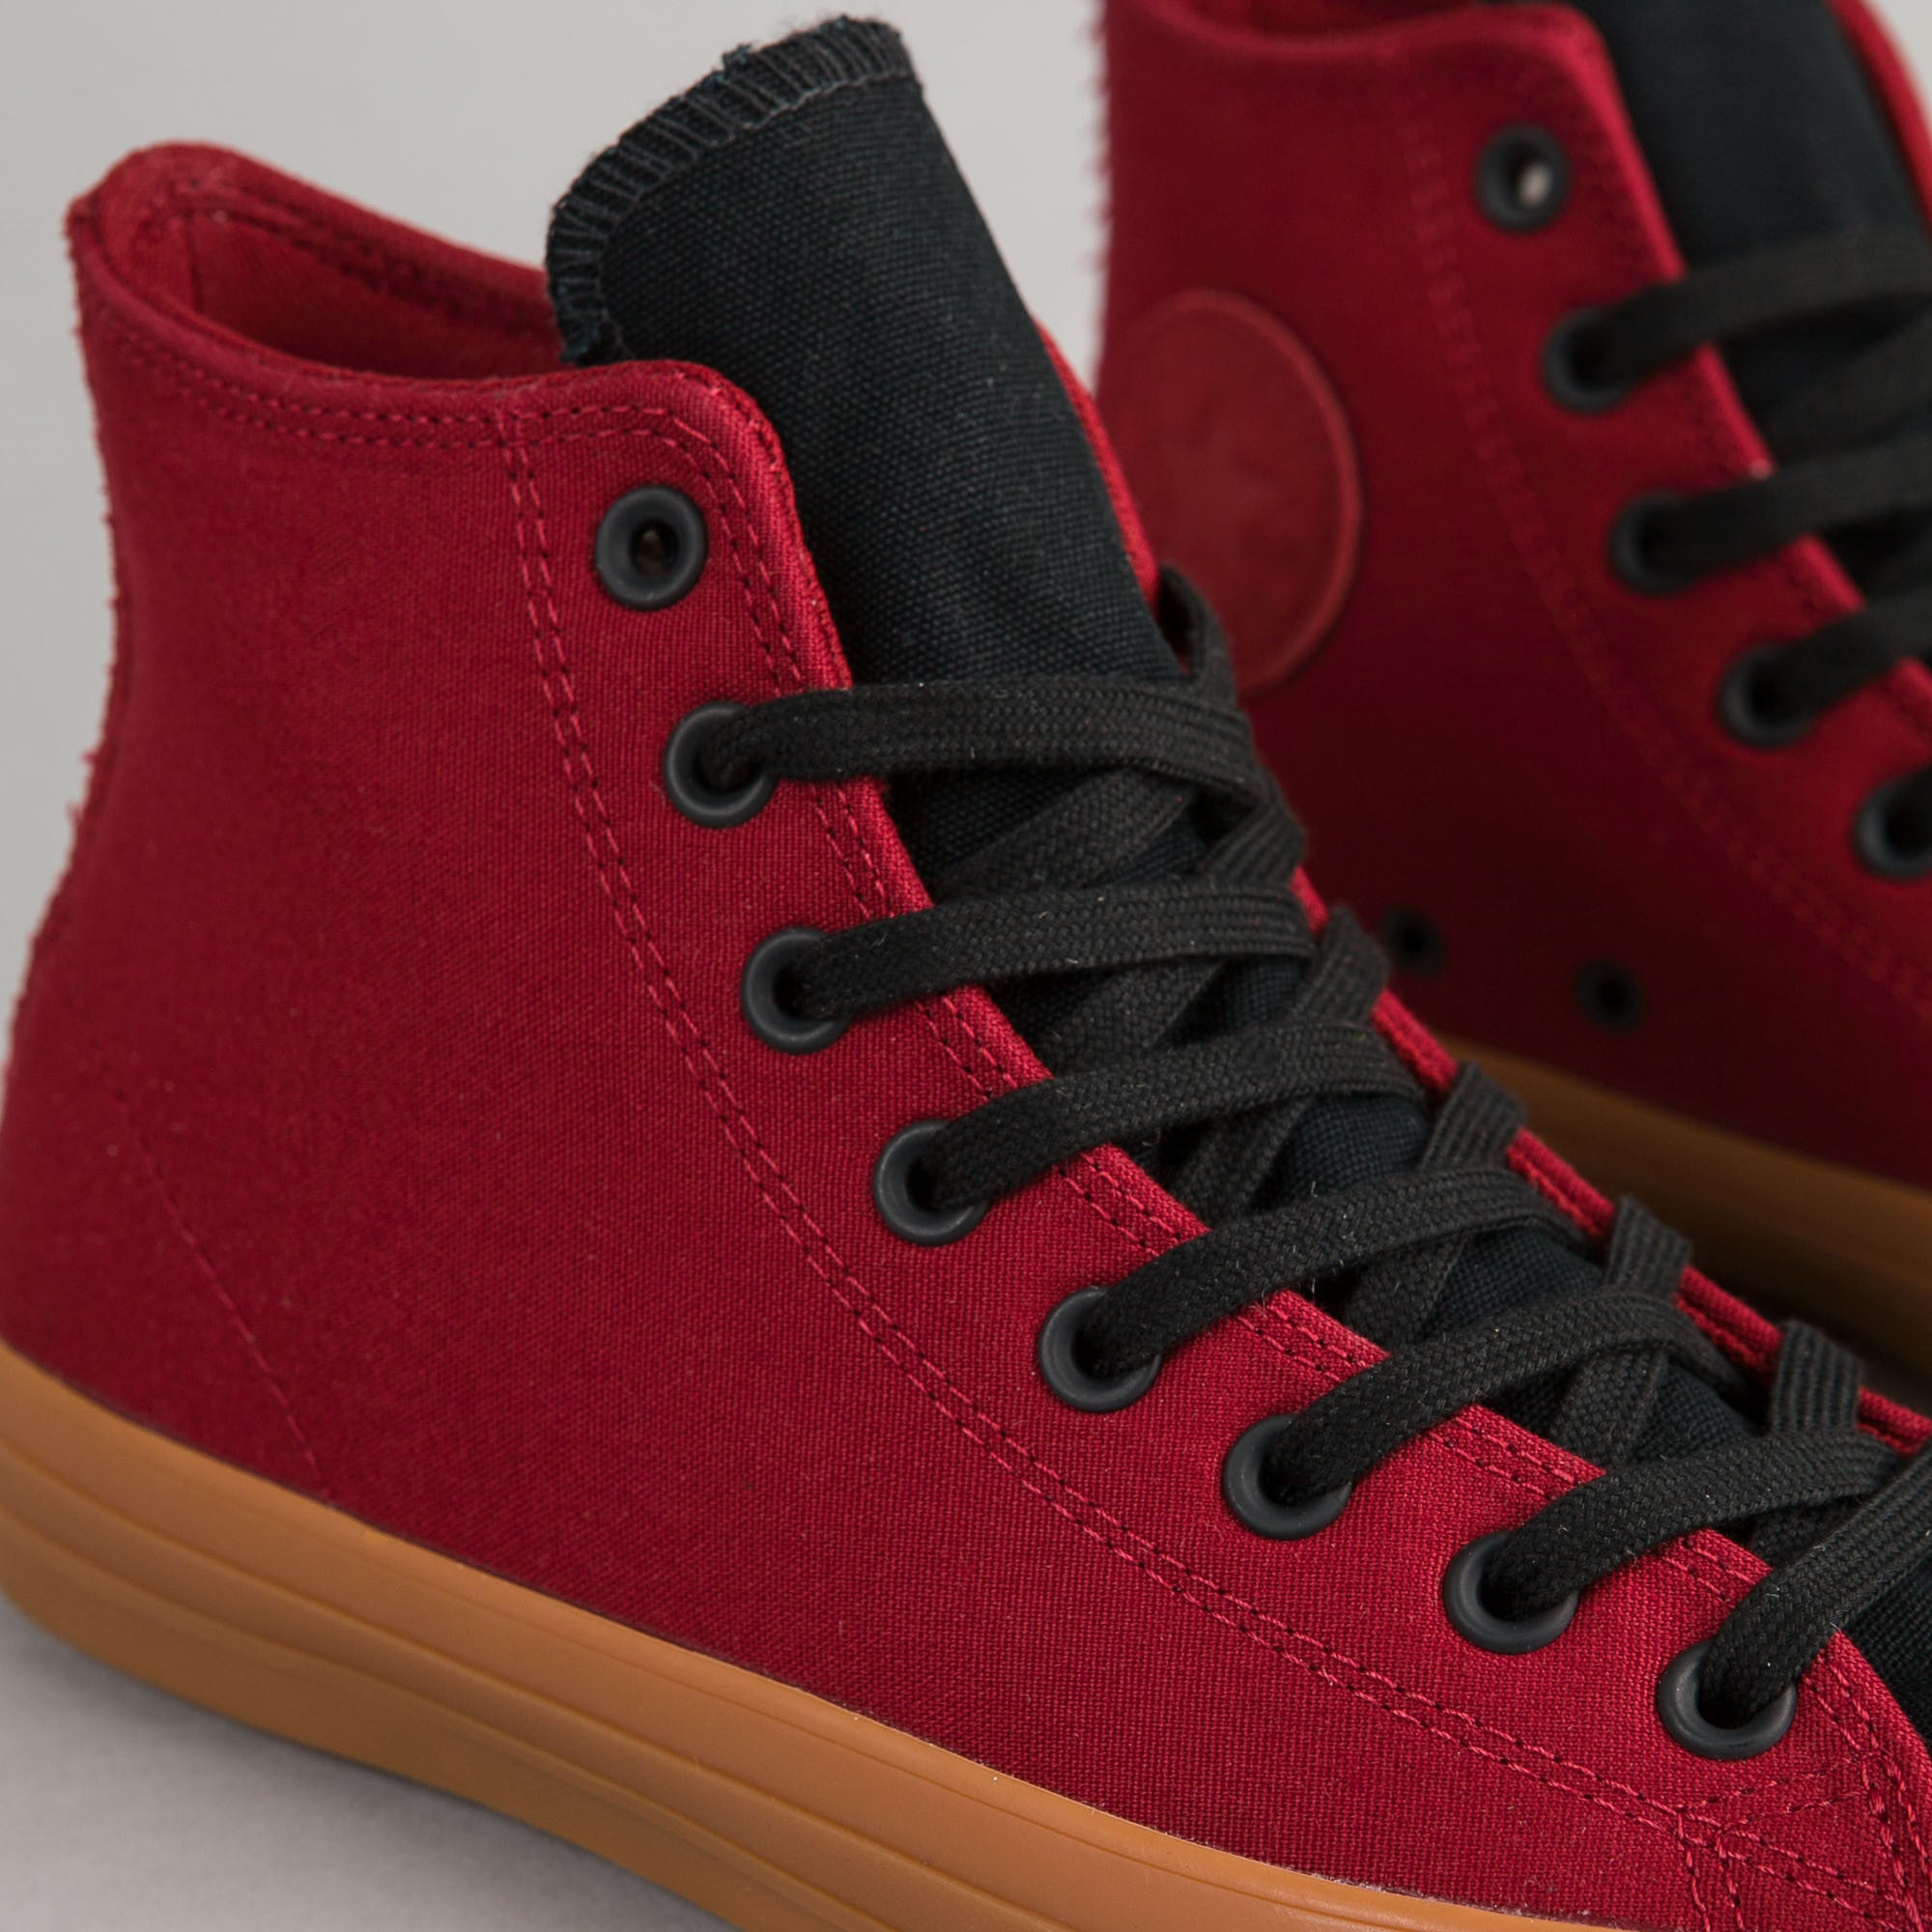 Converse CTAS Pro Suede Backed Canvas Hi Shoes - Brick